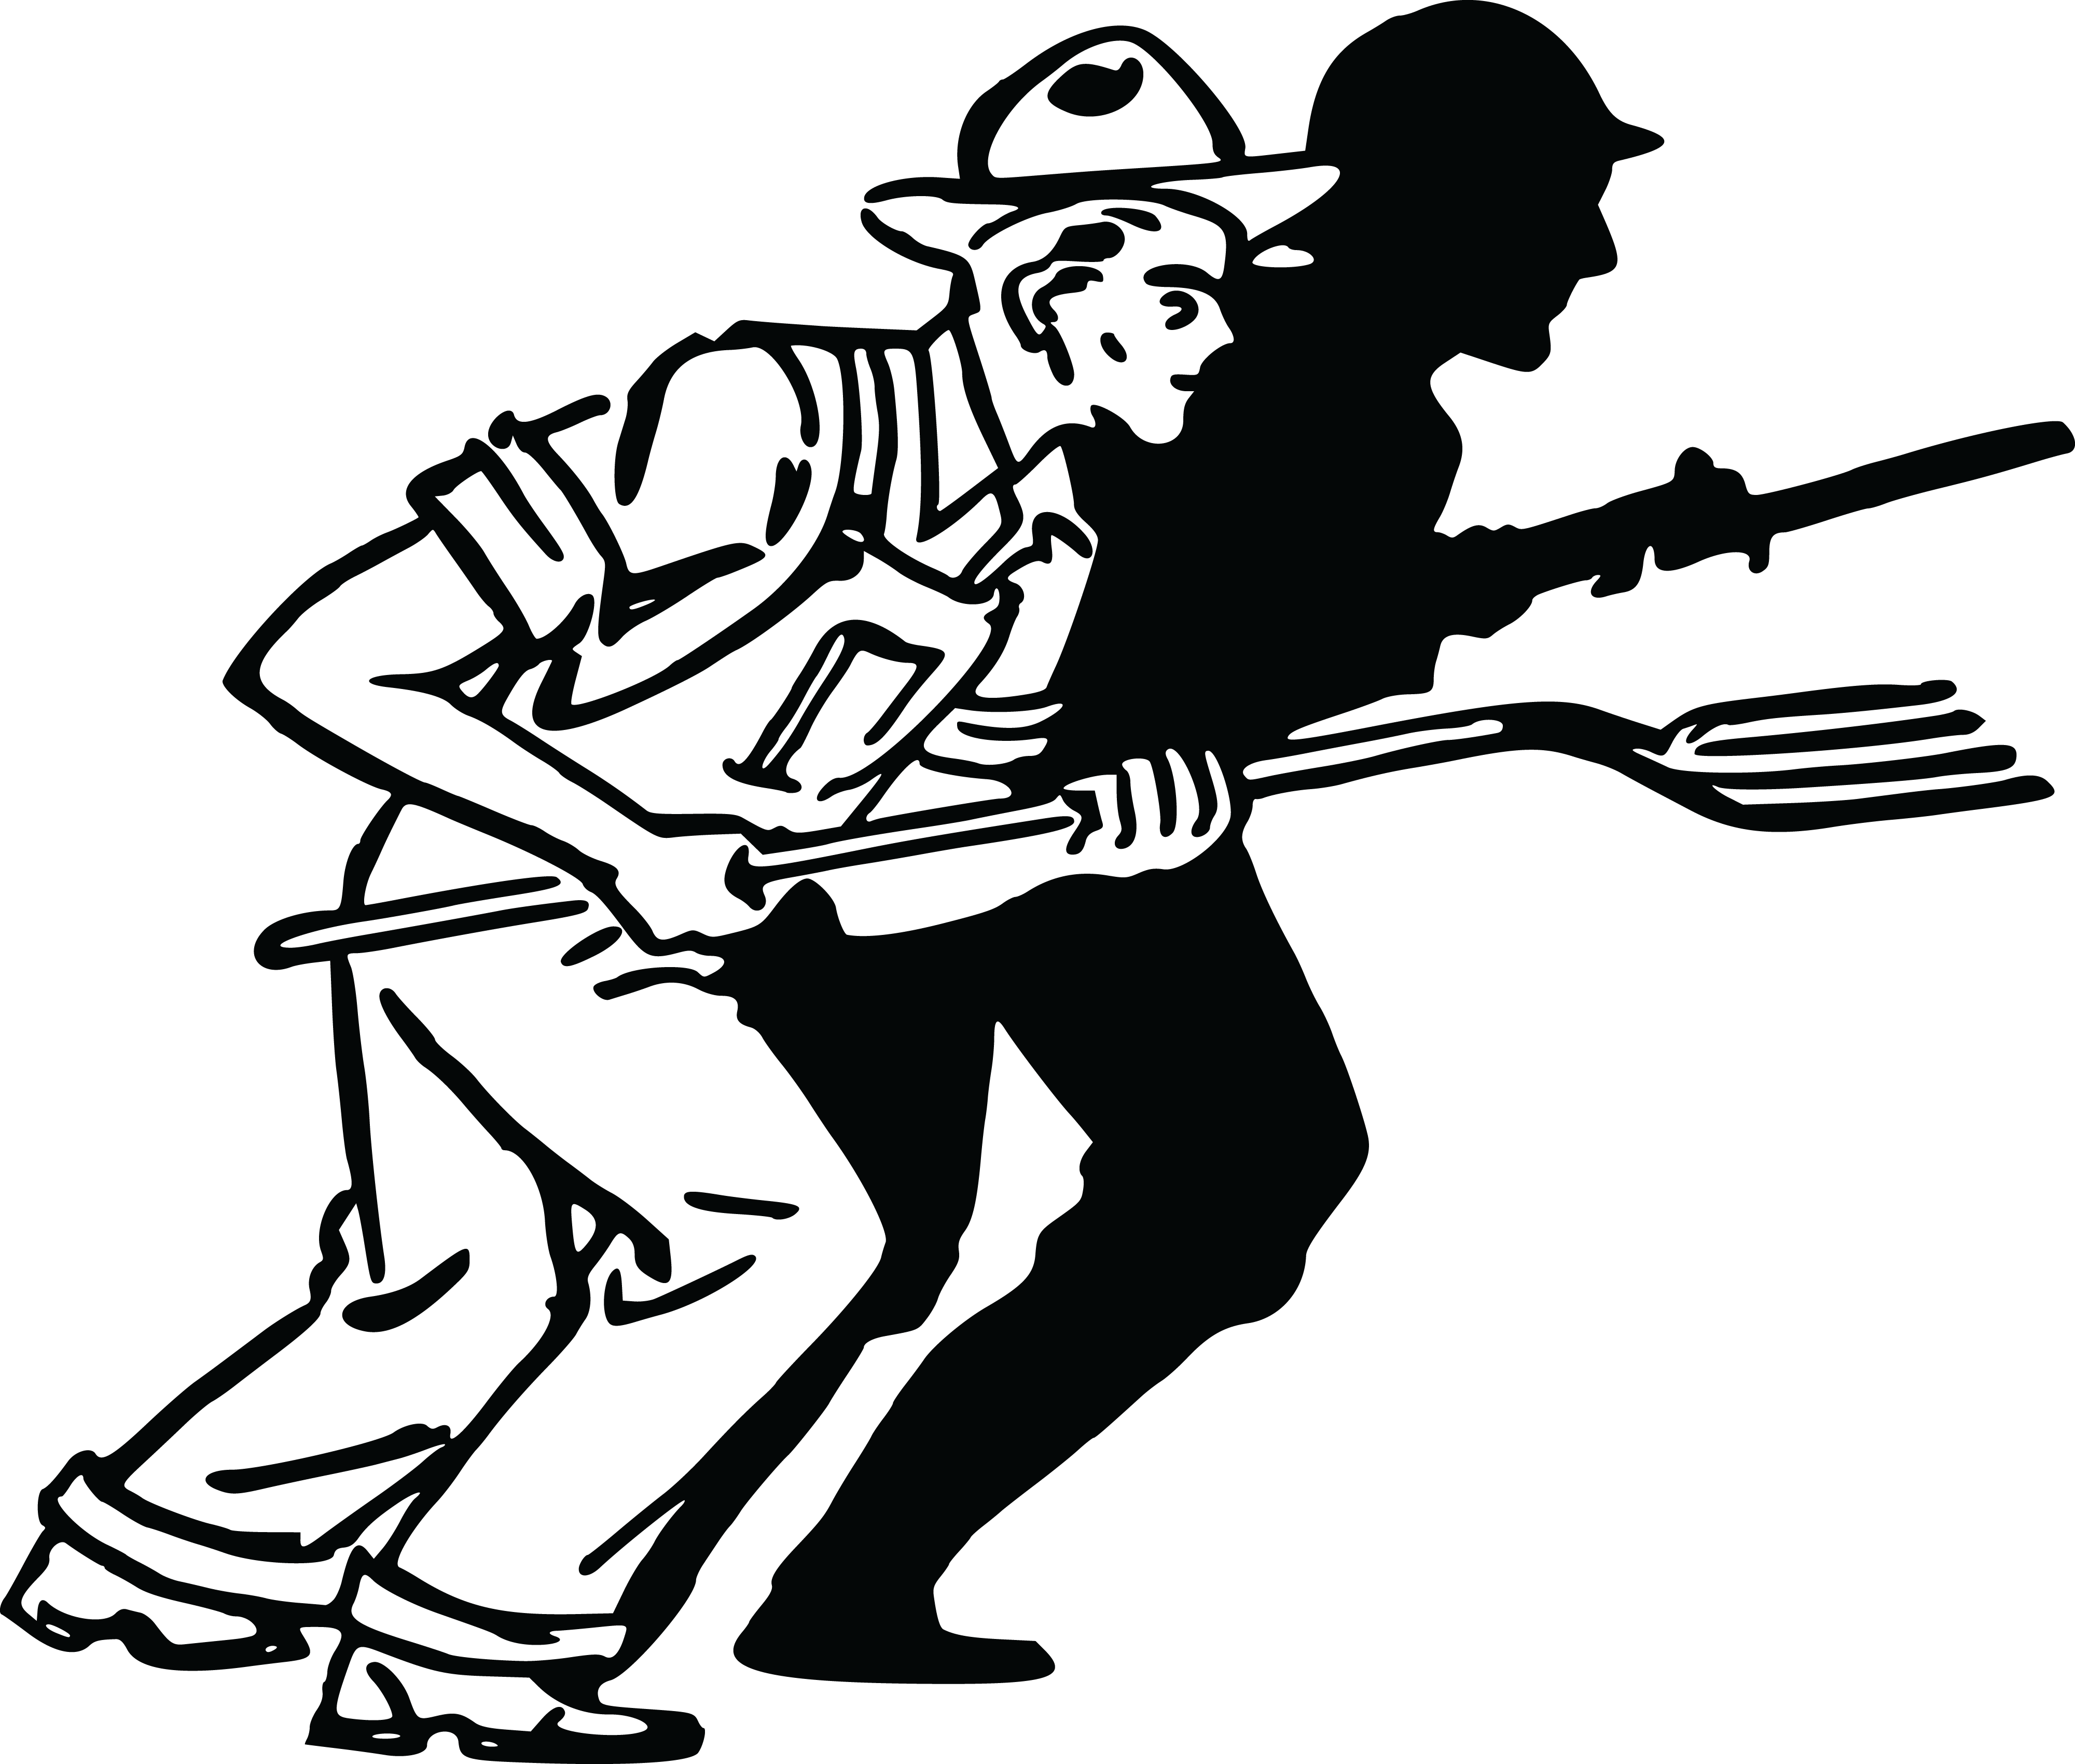 Postcard clipart black and white. Soldiers marching silhouette at